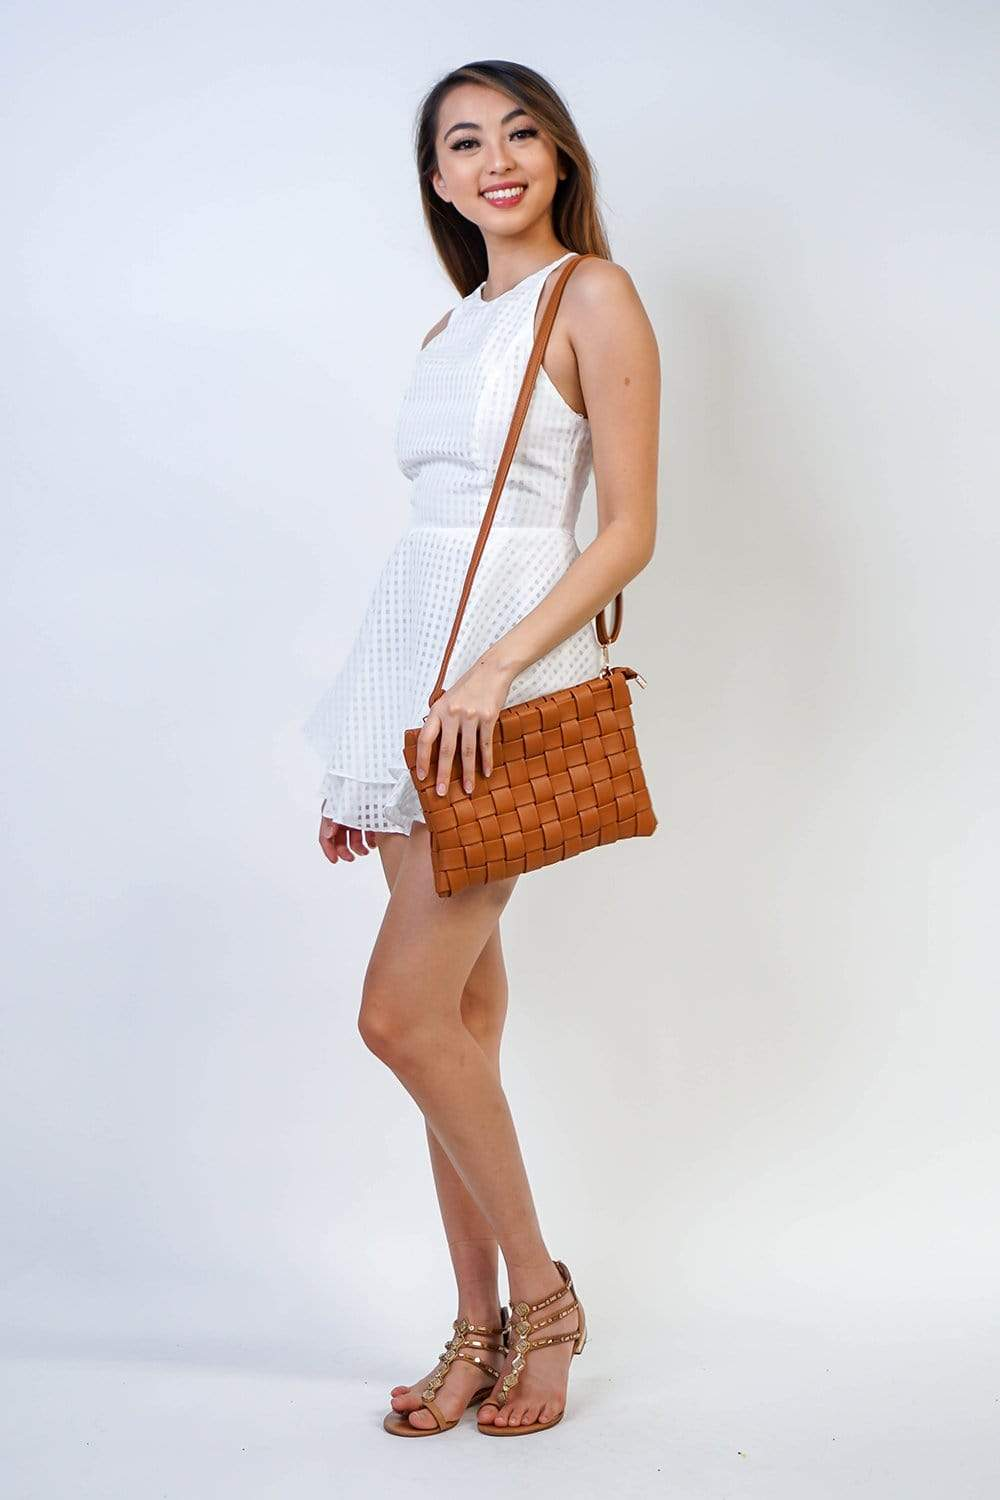 Sleeveless white gingham romper perfect for day outings and cocktail parties. Halter neck and back zipper, with an A-line short that will add movement and dynamic to your look.